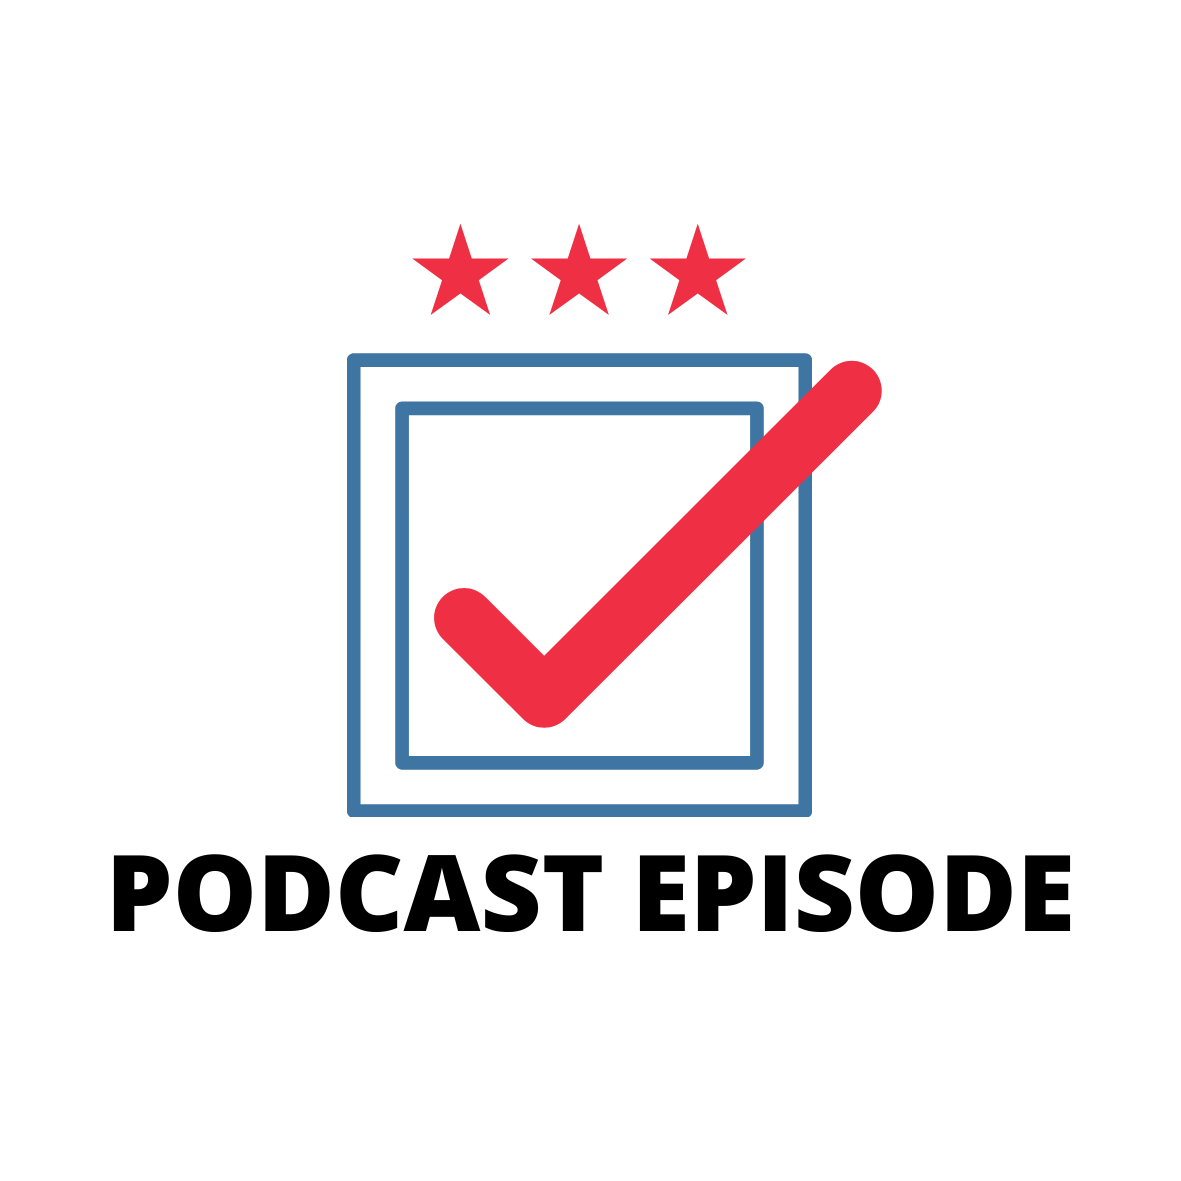 Podcast Episode 8: The 2020 Presidential Election